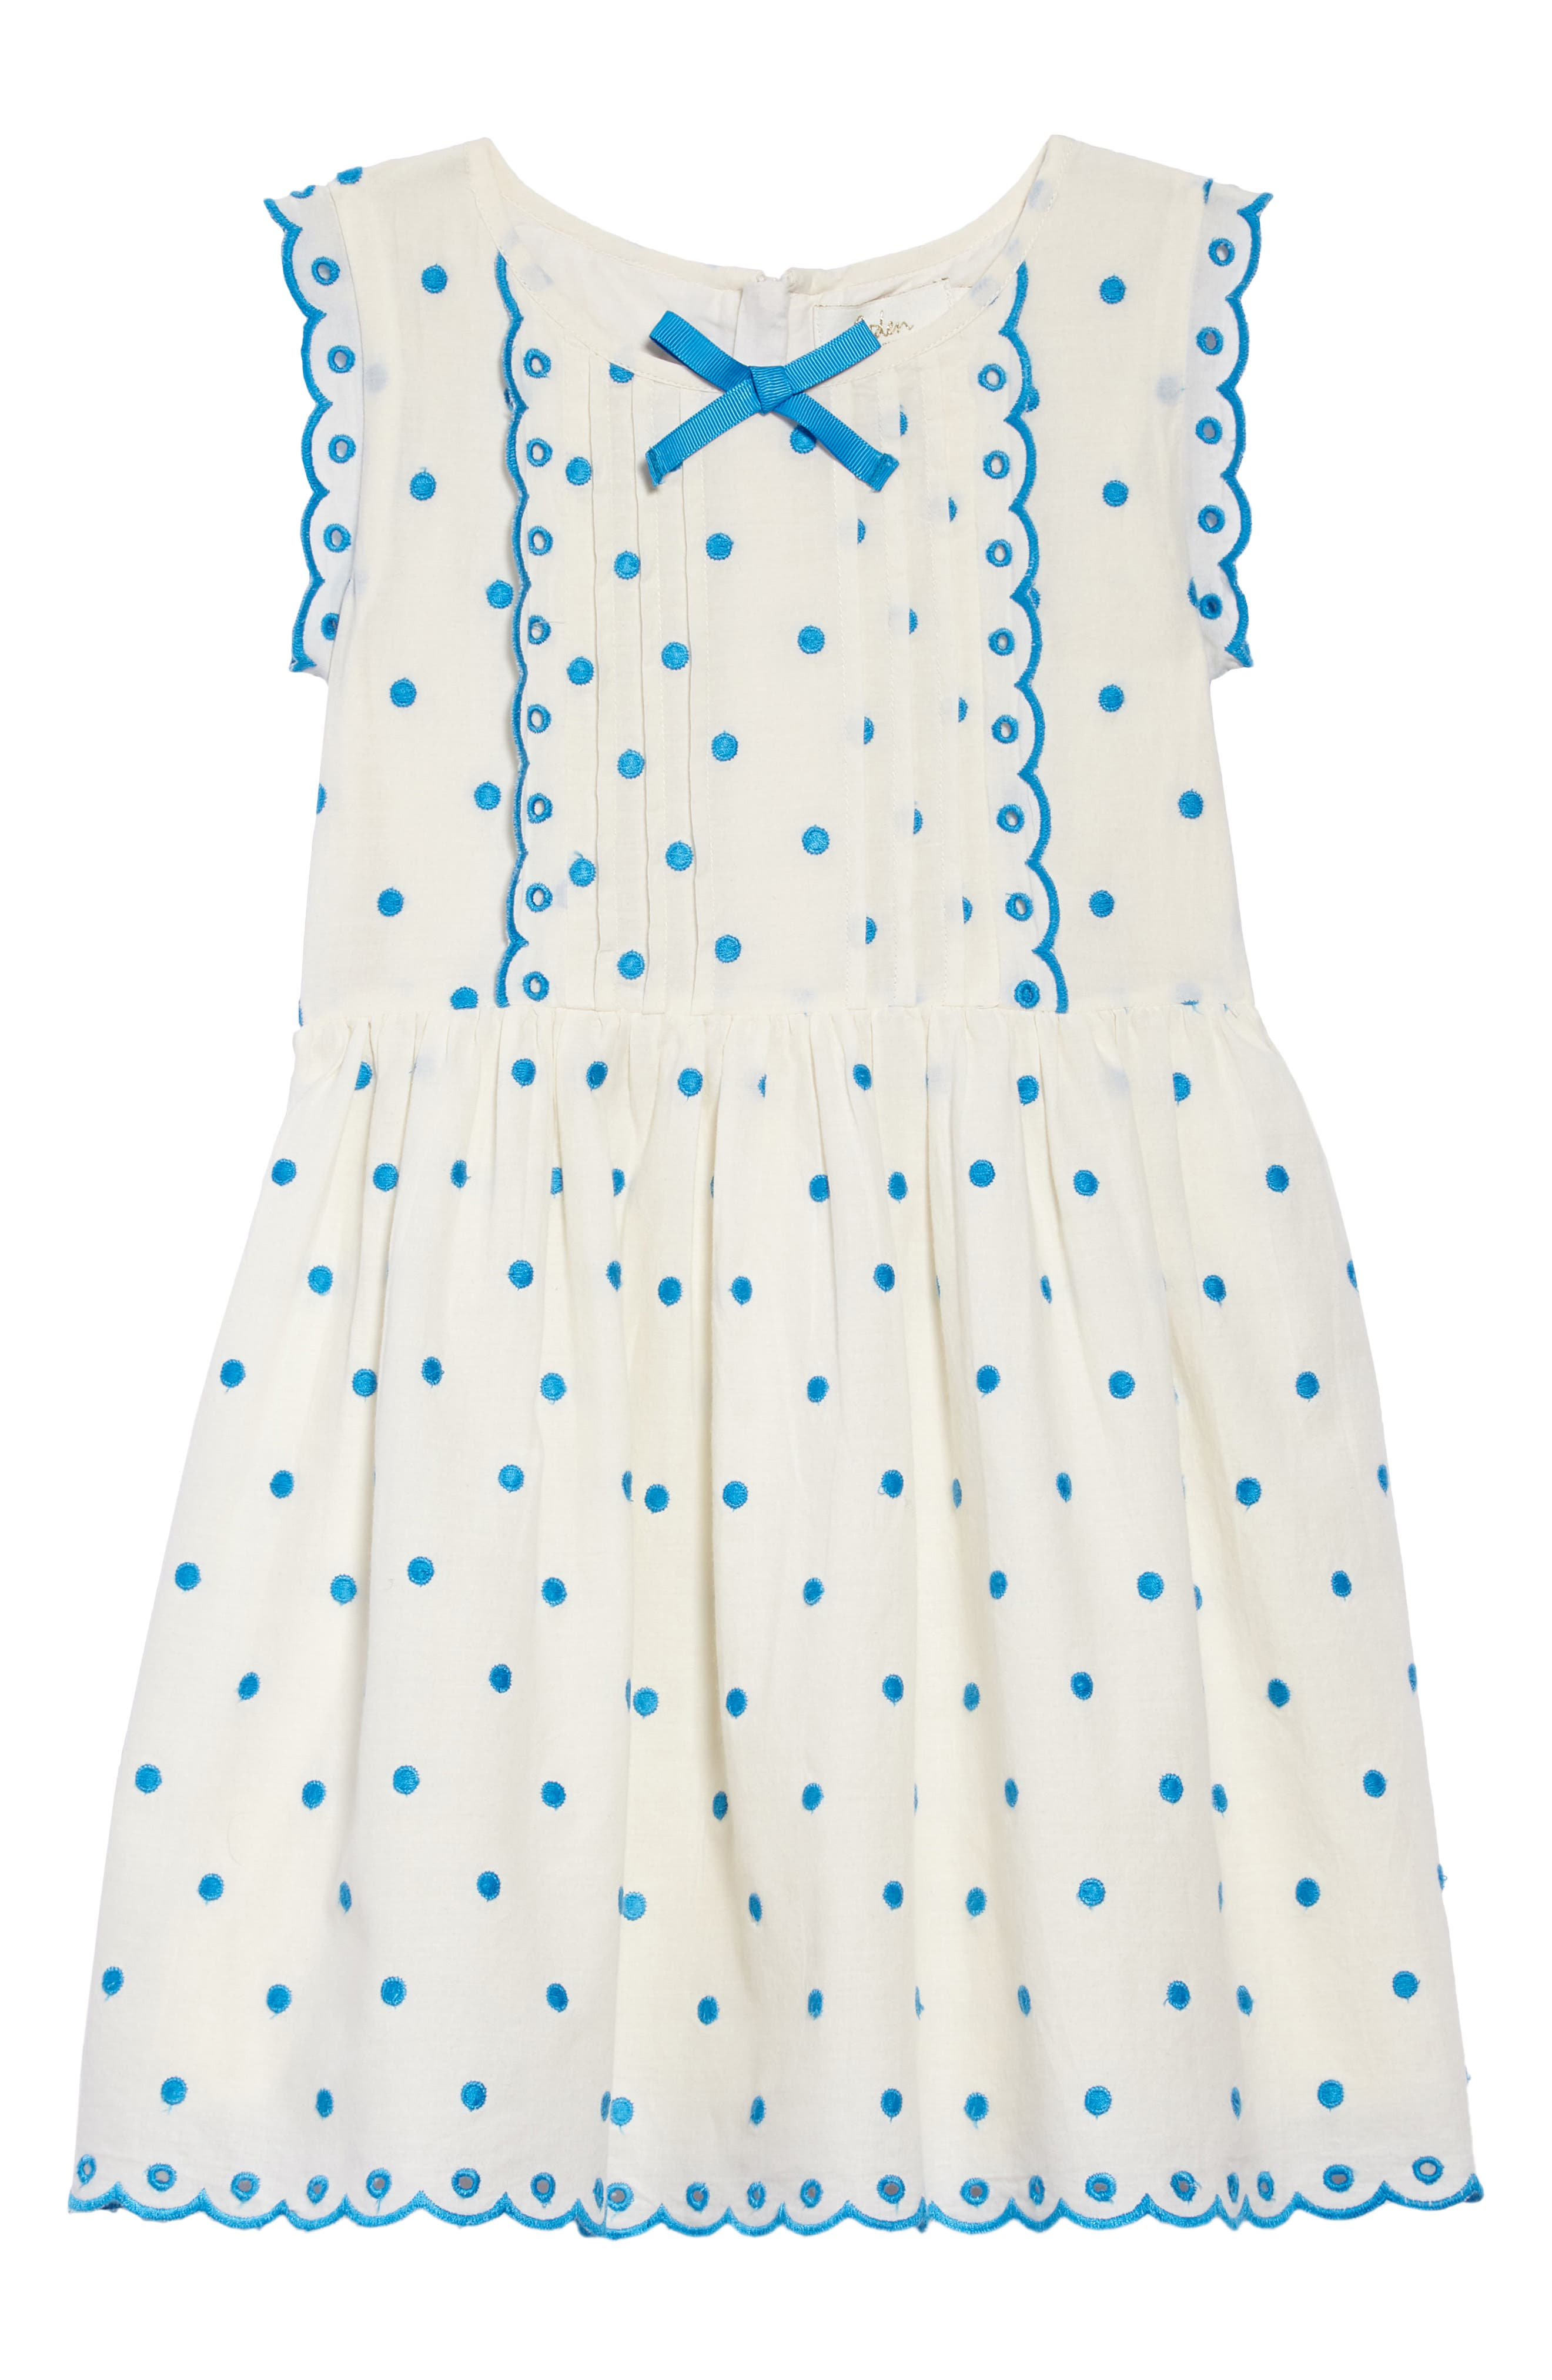 Embroidered Dot Scalloped Dress,                             Main thumbnail 1, color,                             Sptecru/ Fluro Blue Spot